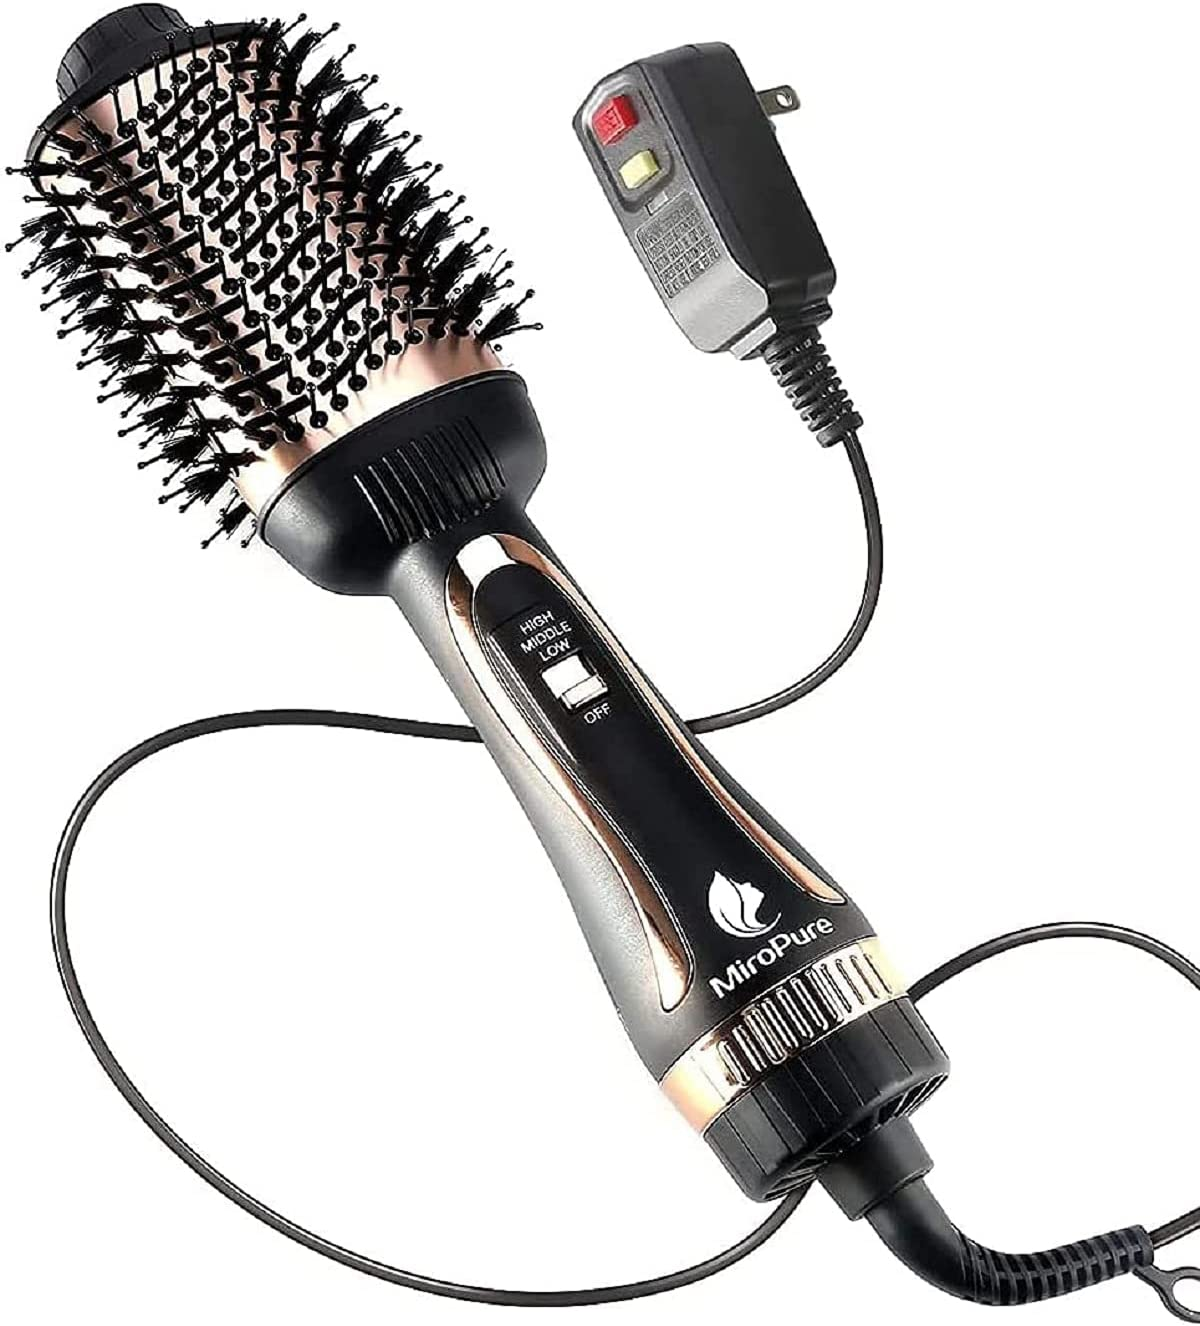 Hair Dryer Brush,Hot Air Brush,Blow Dryer Brush for Women One-Step Hair Styling Tools & Appliances 1000W with Leakage Protector, Professional Salon Negative Ion Anti-Frizz, Hair Brush Blow Dryer : Beauty & Personal Care